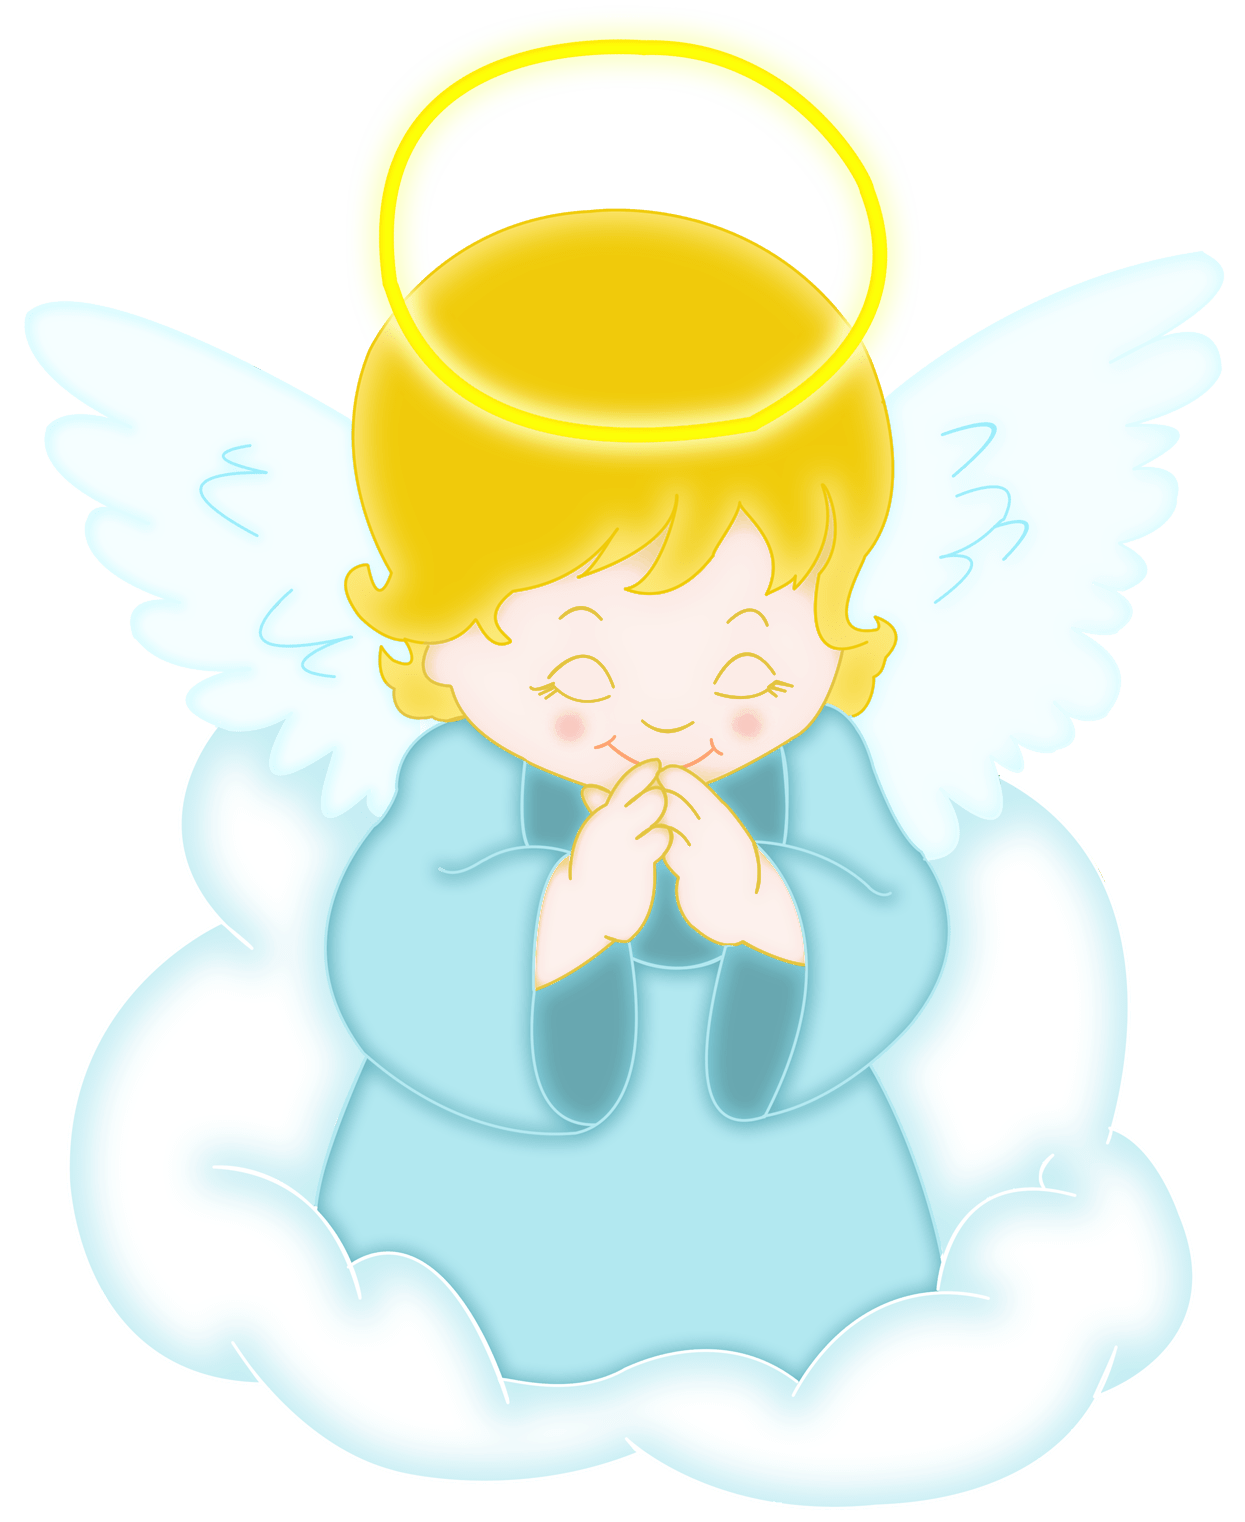 Little Angel Clipart - Cliparts.co